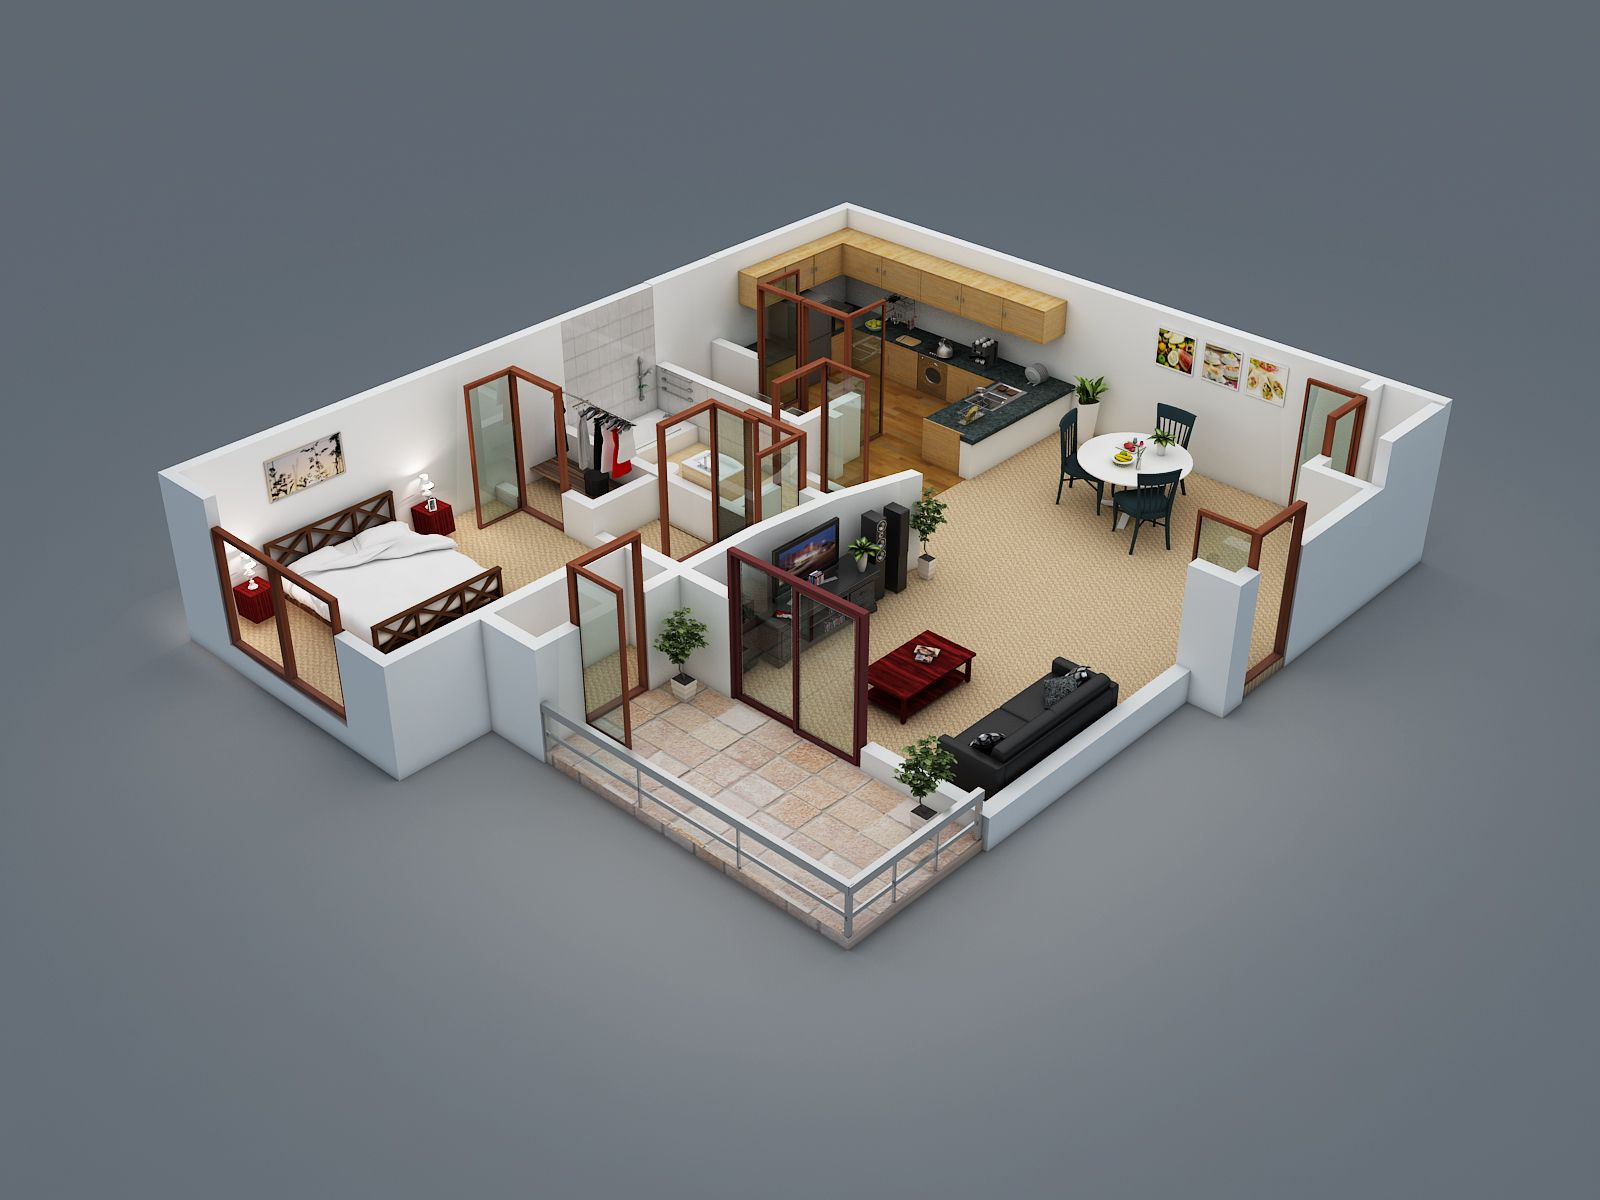 3d floor plans wazo communications apa pinterest 3d architectural floor plans and house 3d home design online